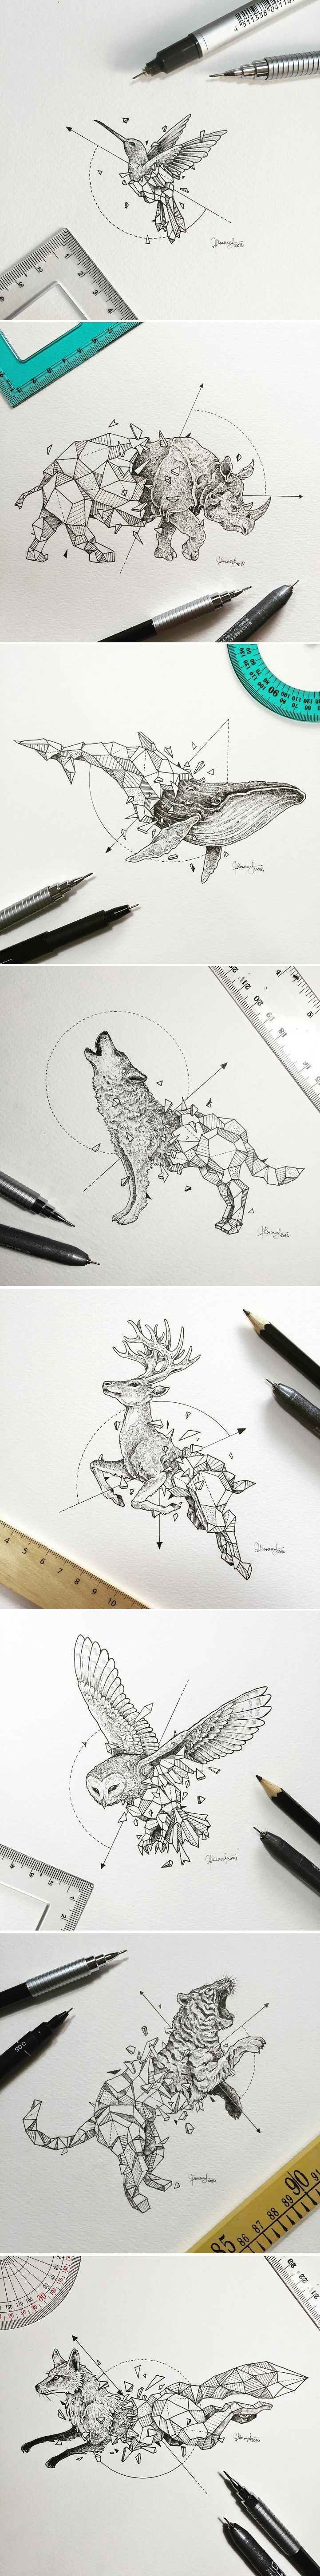 Manila-based illustrator Kerby Rosanes known as Sketchy Stories has created a new series of sketches combing animals with geometric forms. #ILoveTattoos!